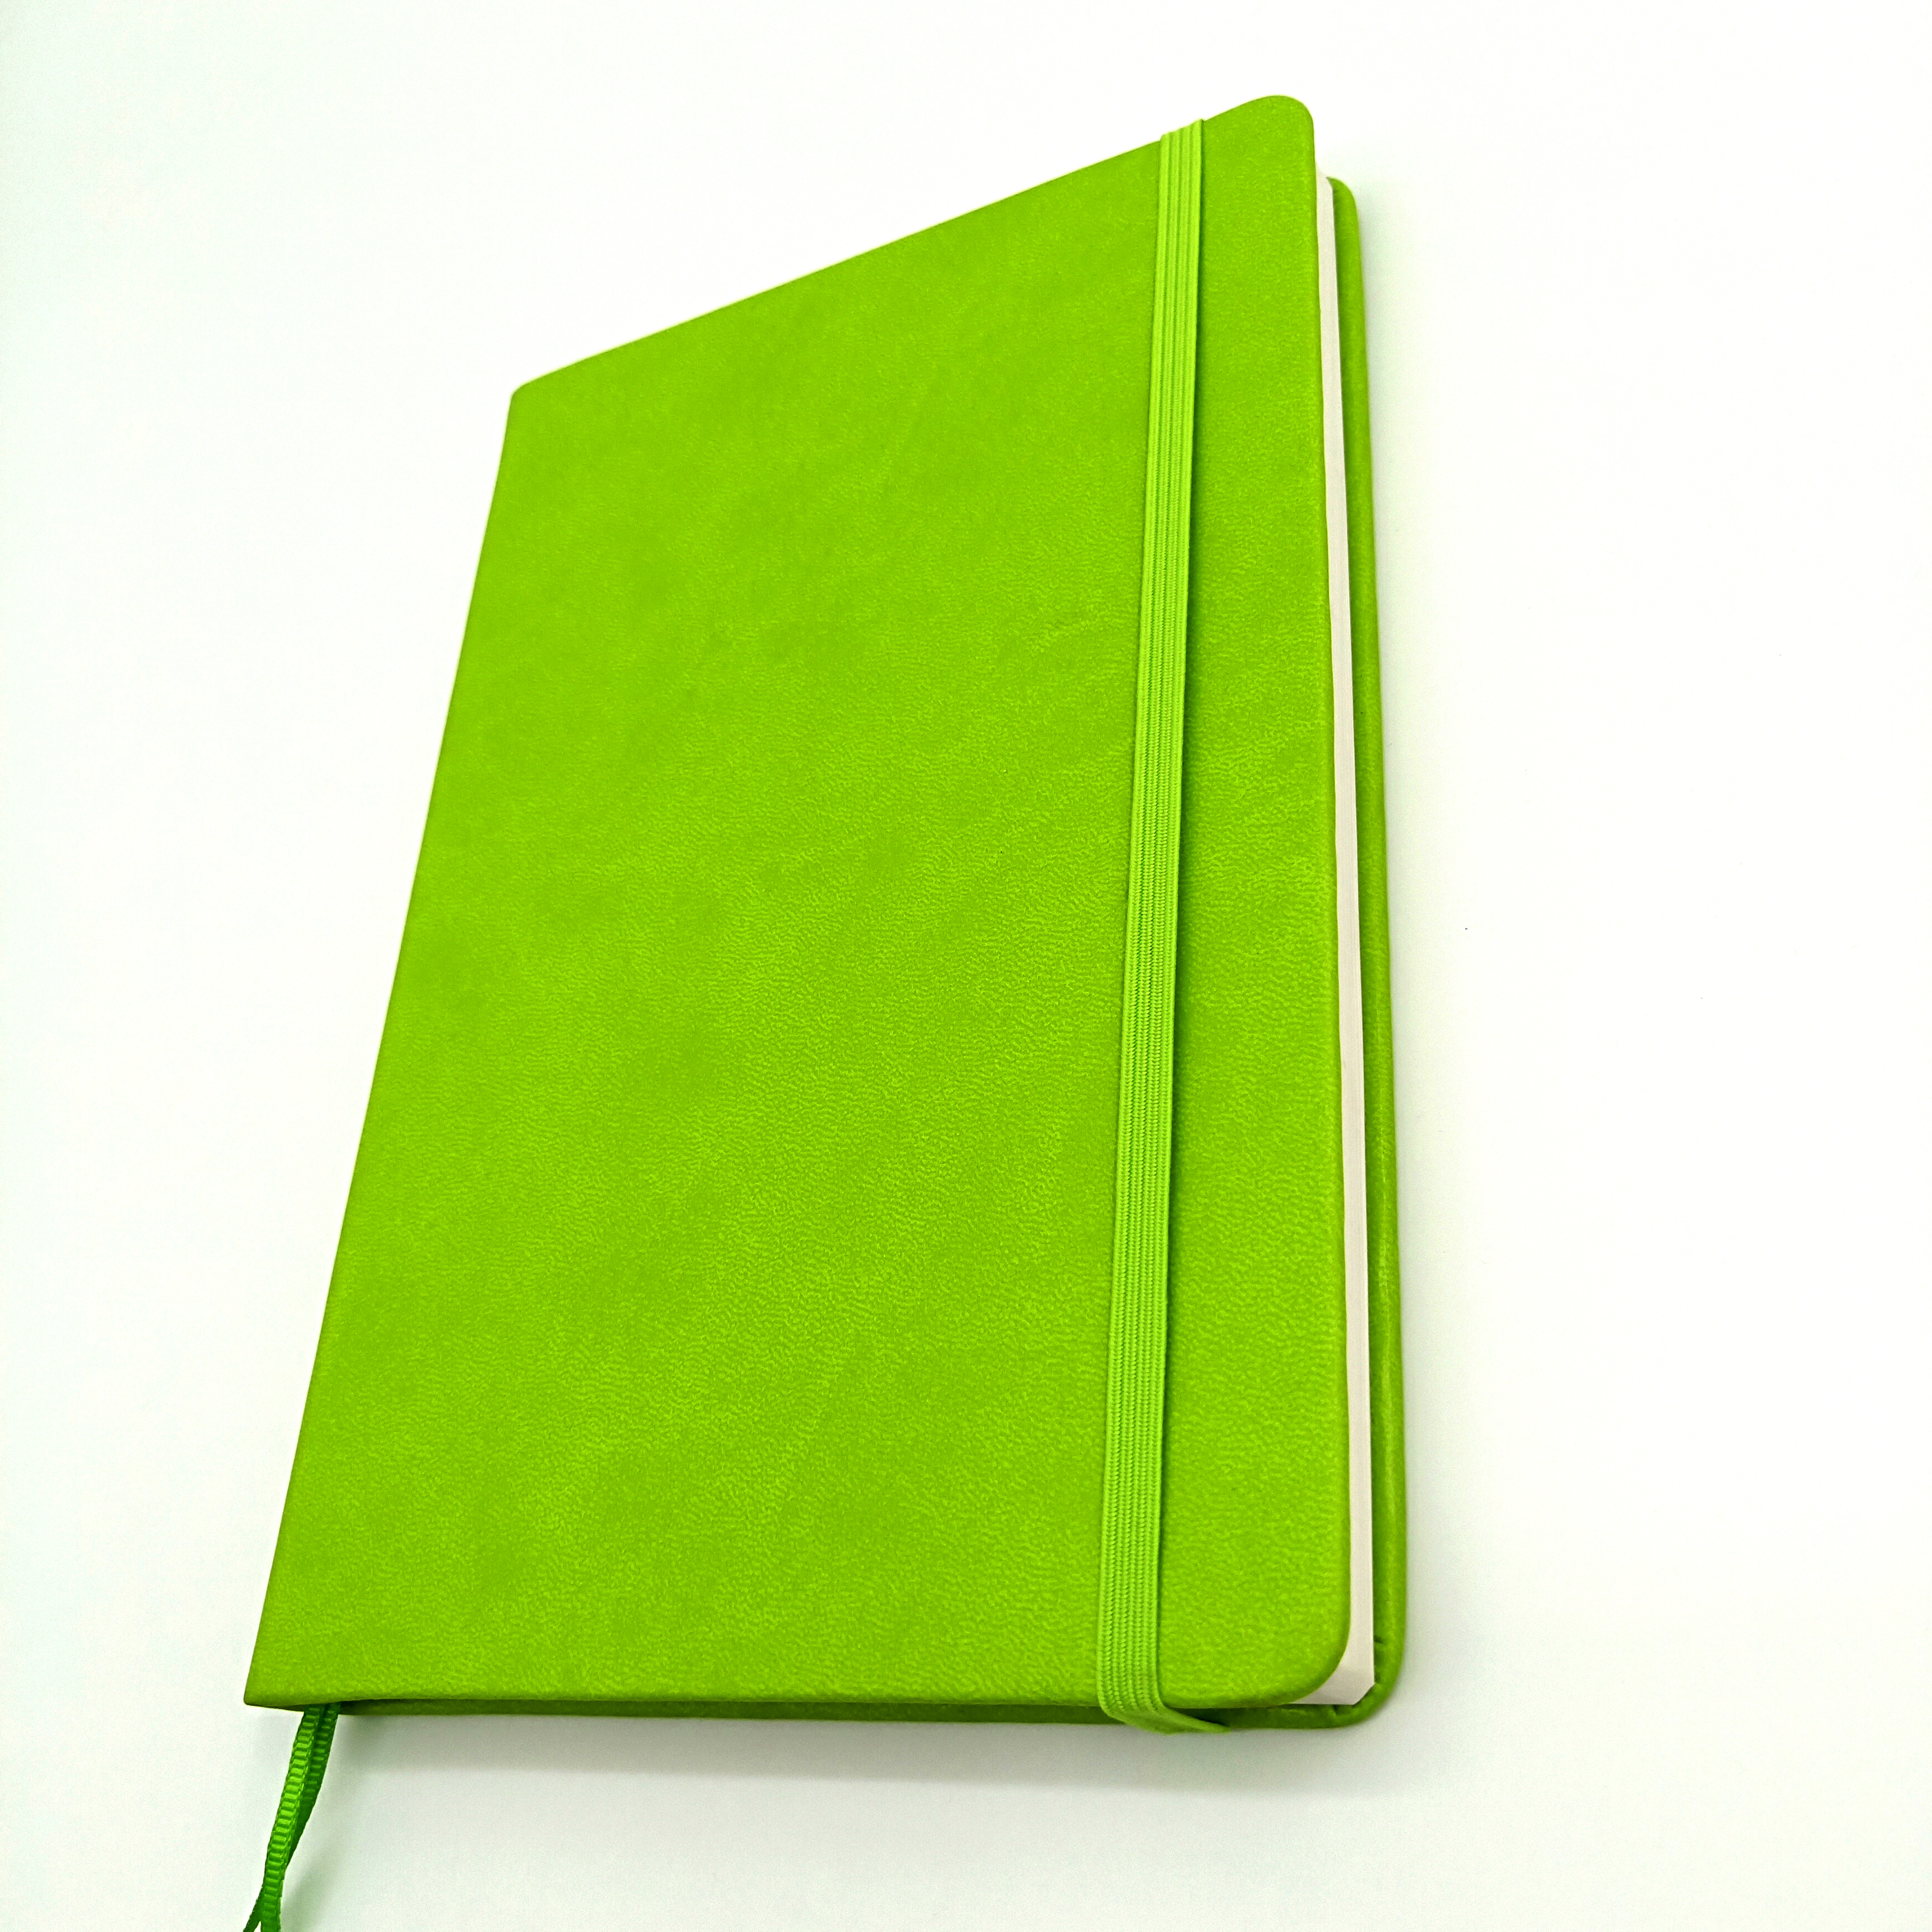 eco friendly green cheap leather journal/ letterpress journal/goal setting journal